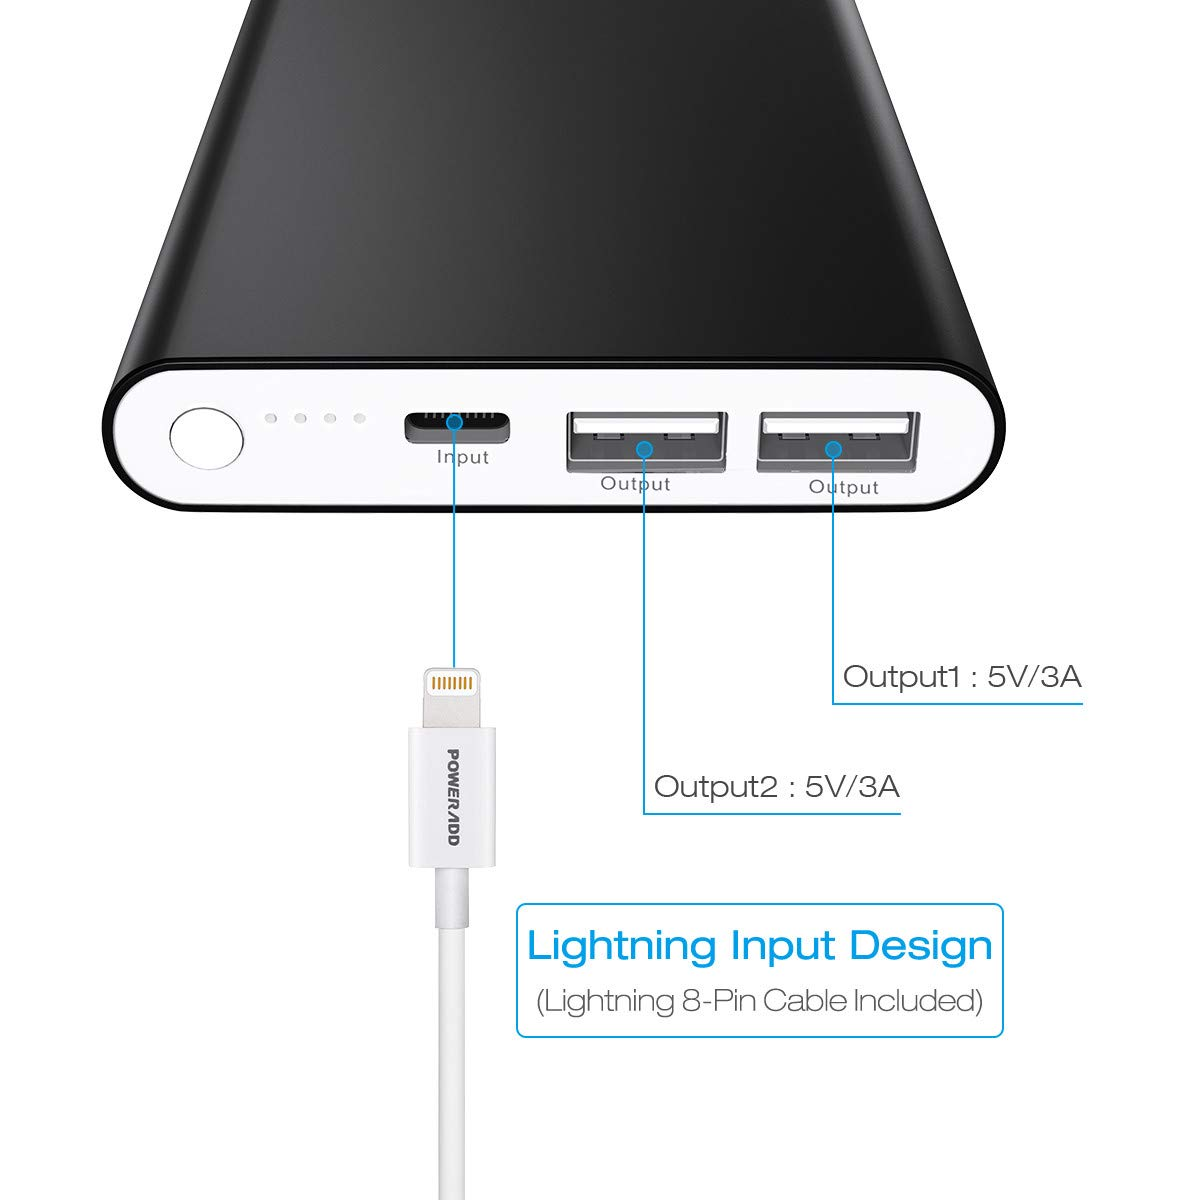 POWERADD Pilot 4GS 12000mAh Portable Charger with 8-Pin Input Power Bank Compatible with iPhone Xs//XR//X//8//8P//7//6S//6//SE//5//4S Samsung S9//S8//S7 and More Blue MFi 8 Pin Cable Included